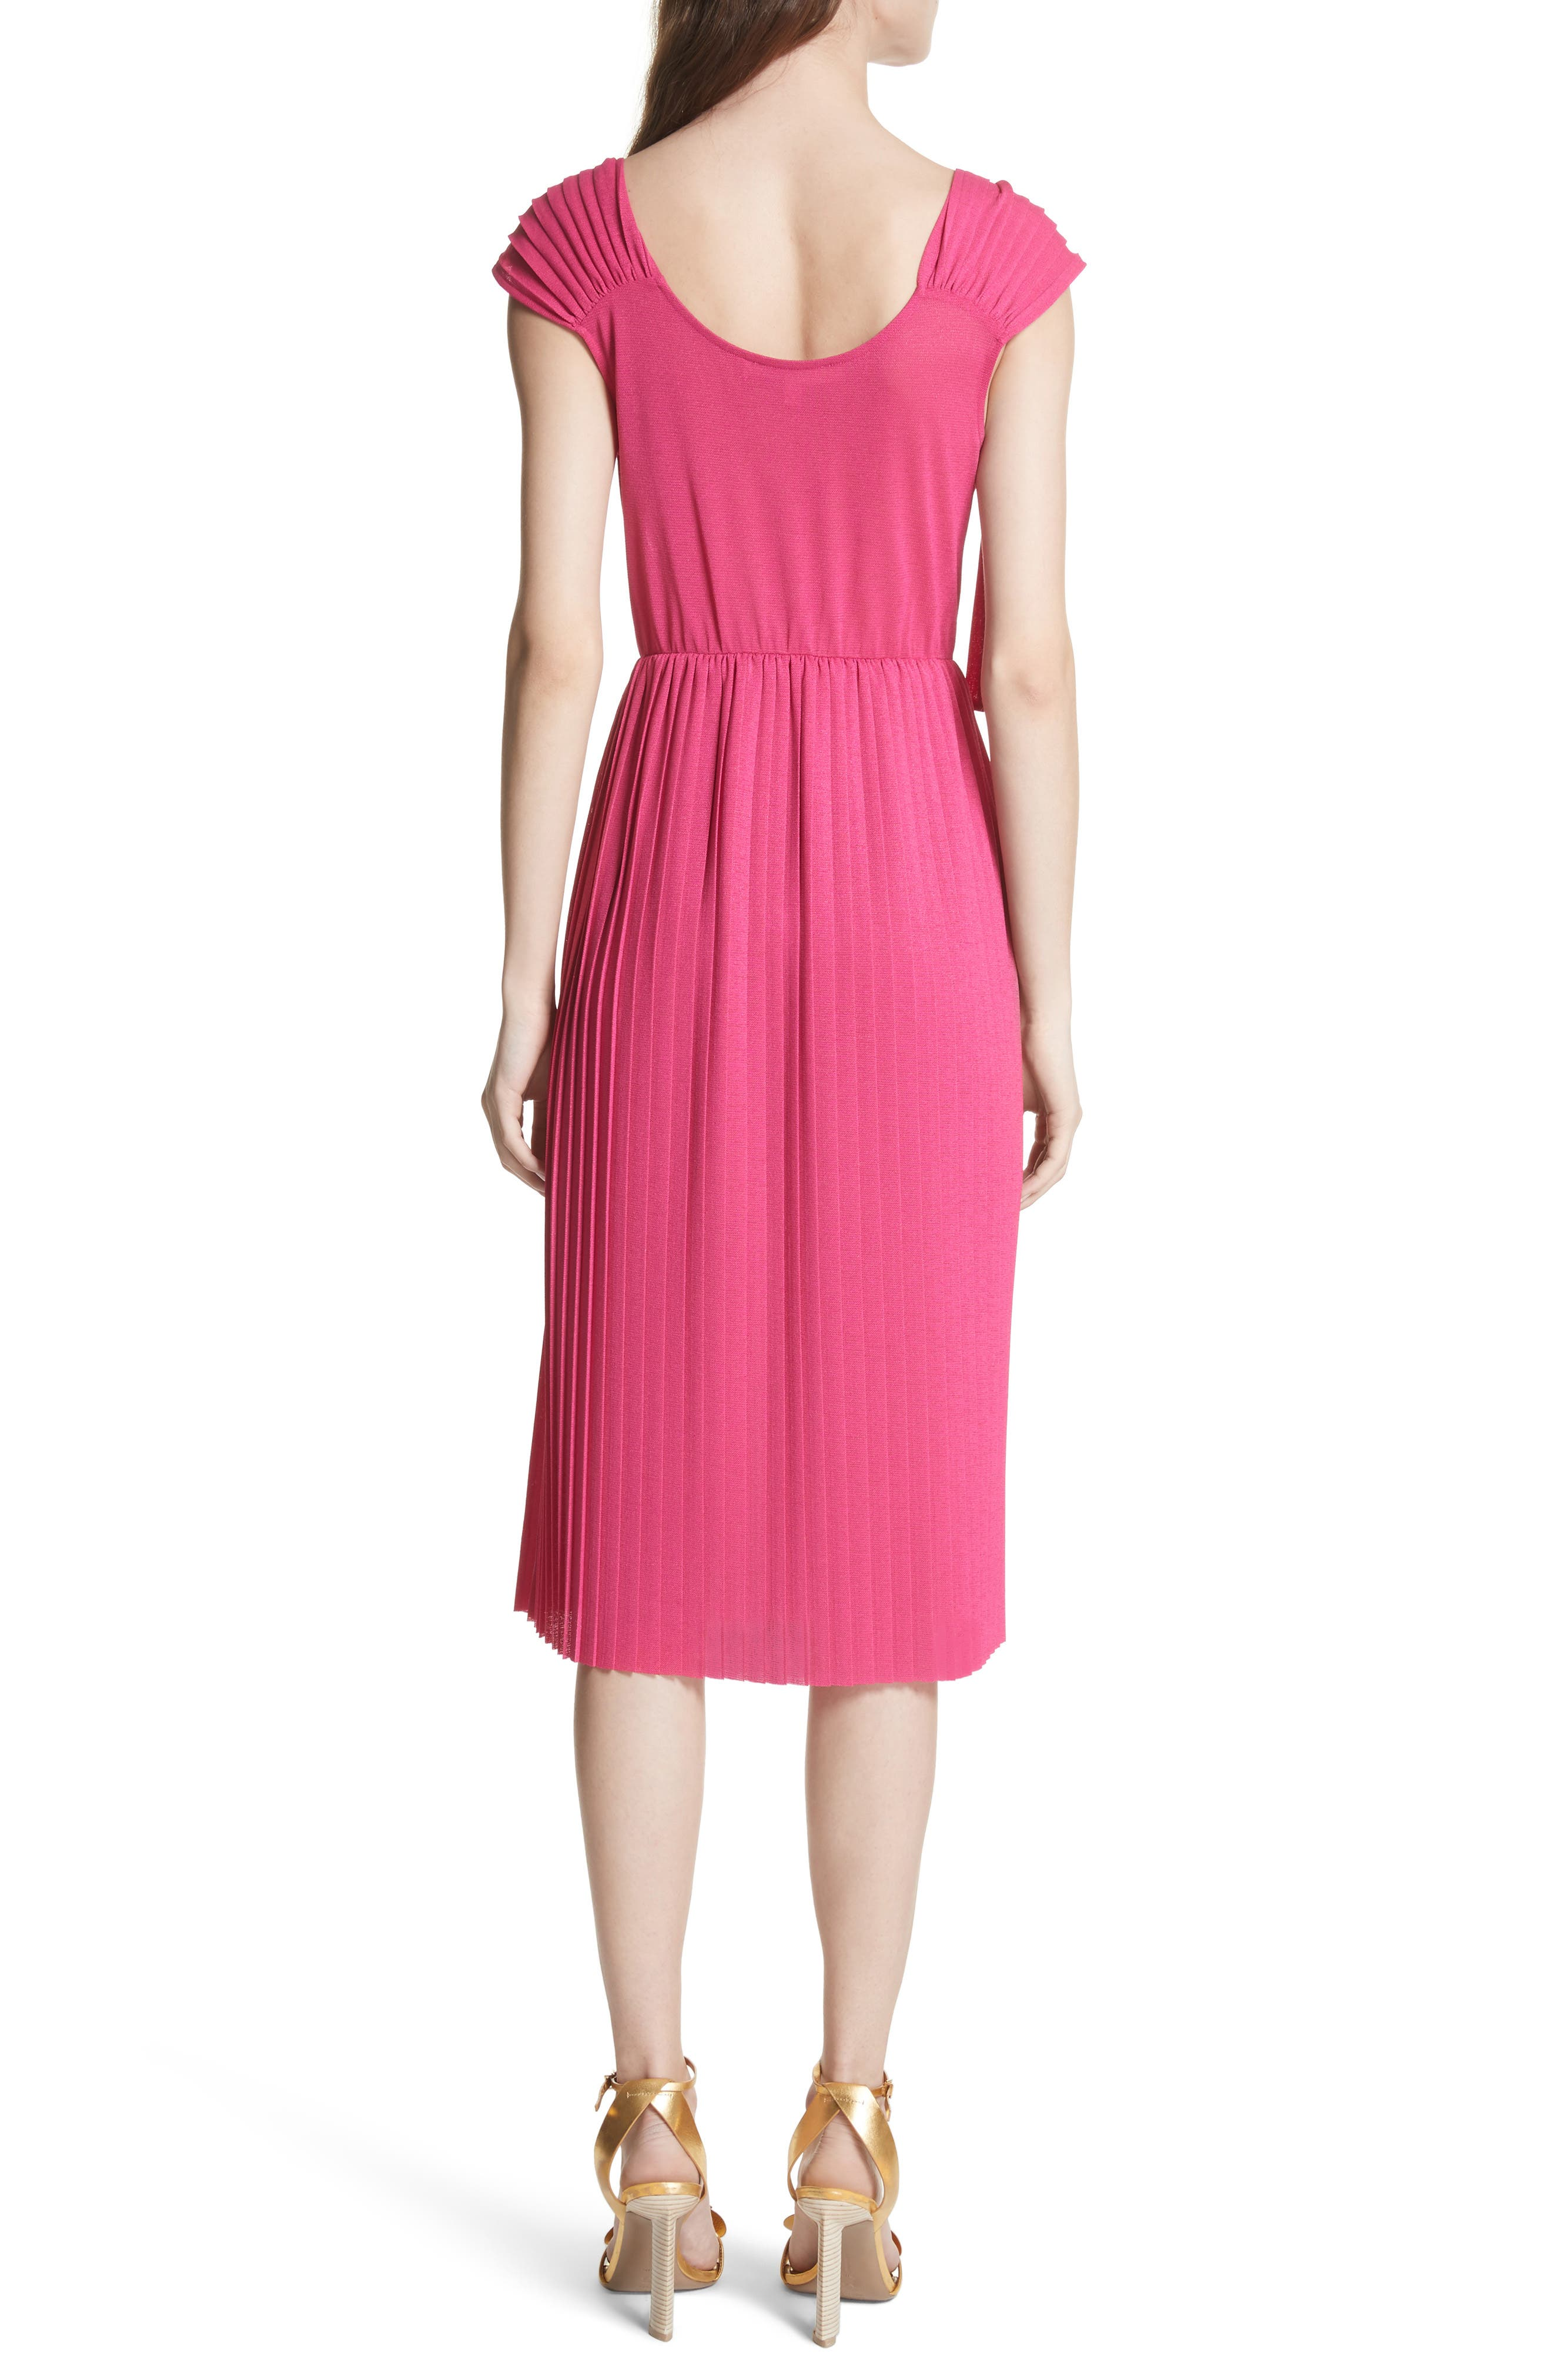 TRACY REESE,                             Grecian Pleat Dress,                             Alternate thumbnail 2, color,                             664